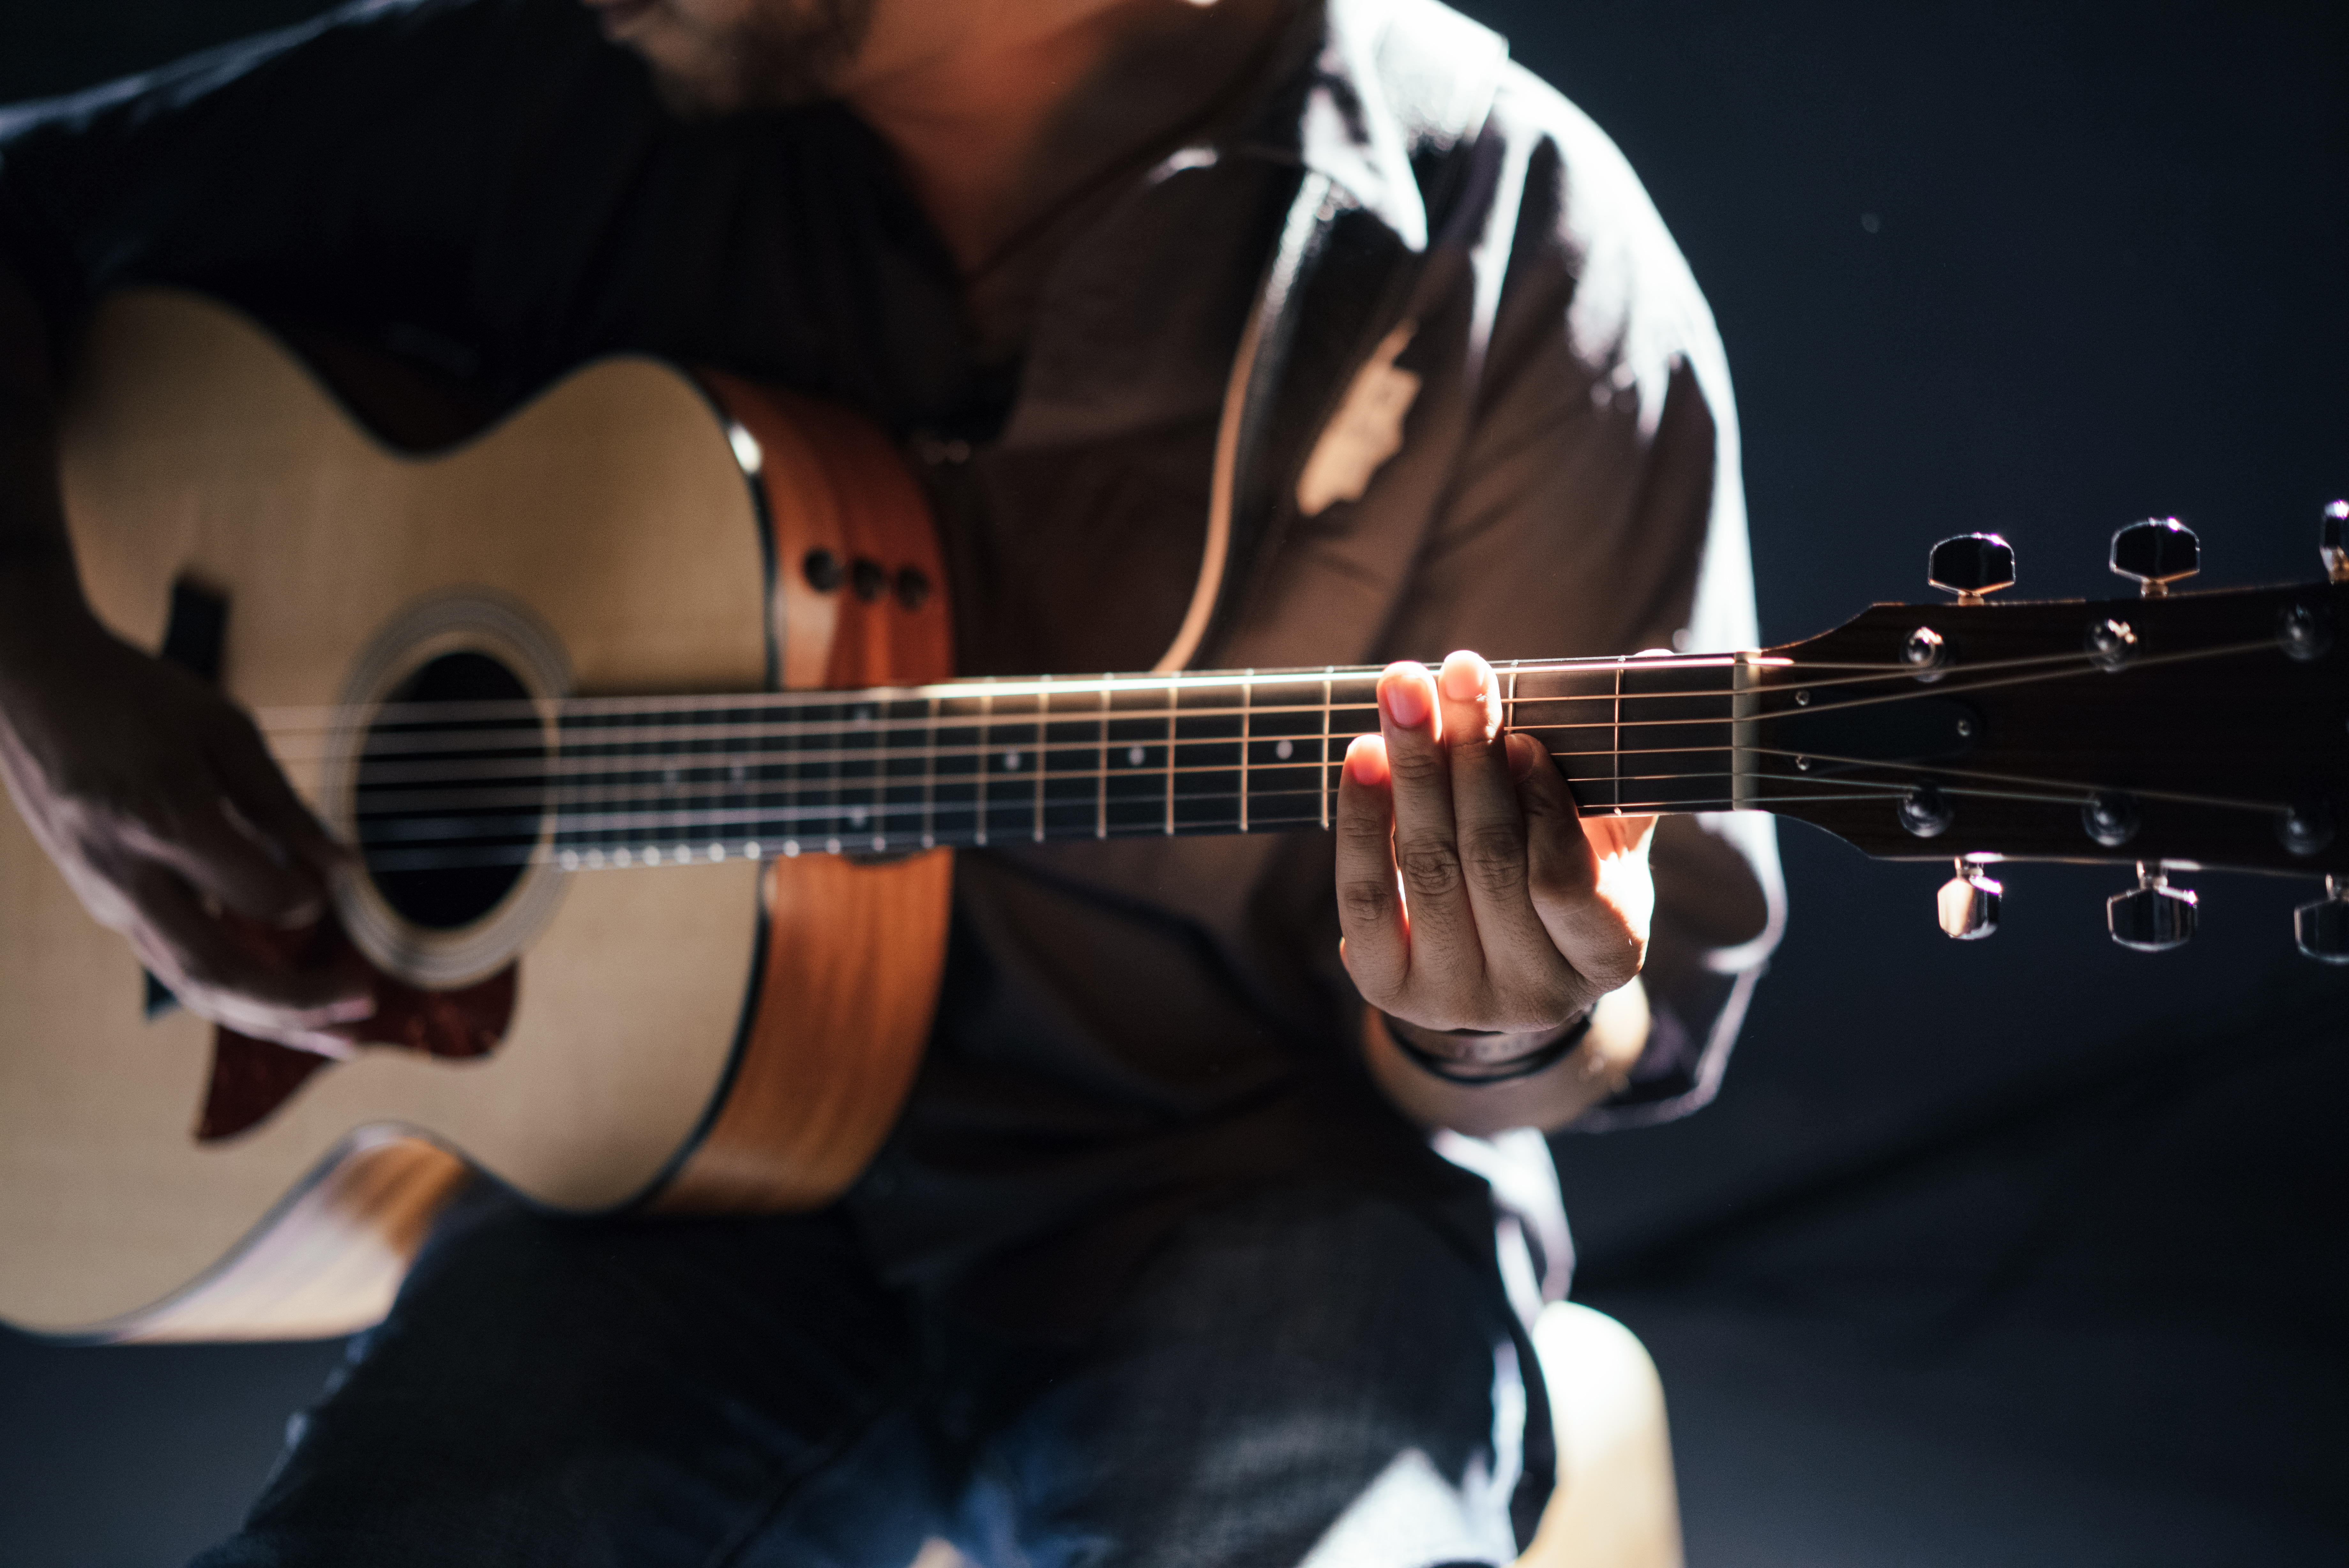 Acoustic guitar player in pale light